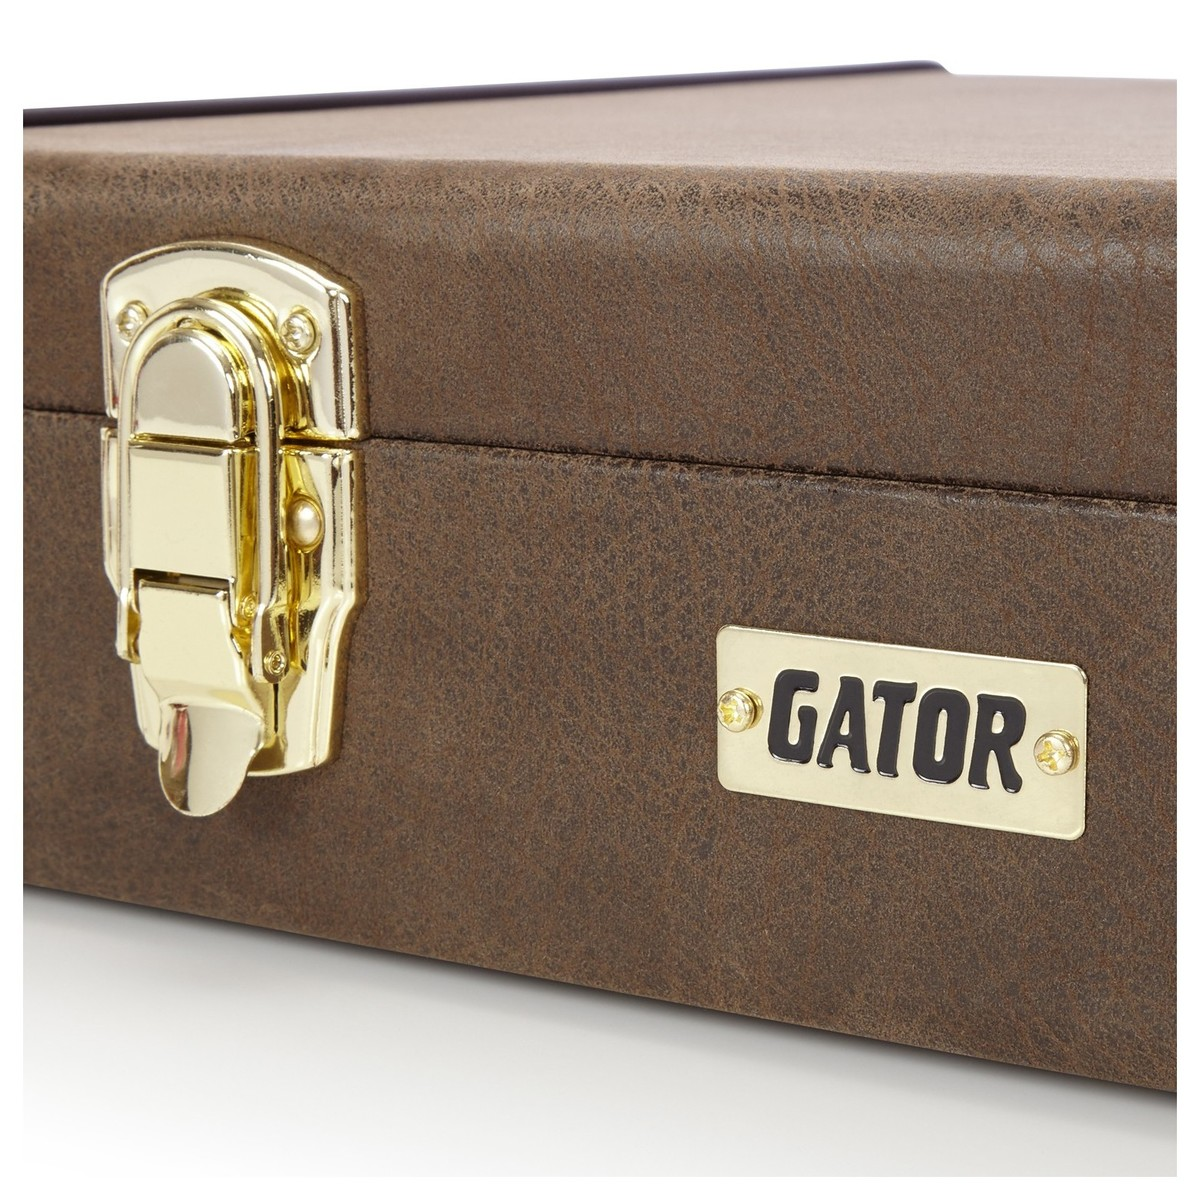 17da3833742 ... Storage Compartment · Gator GW-ELECT-VIN Deluxe Electric Guitar Case,  Latch ...